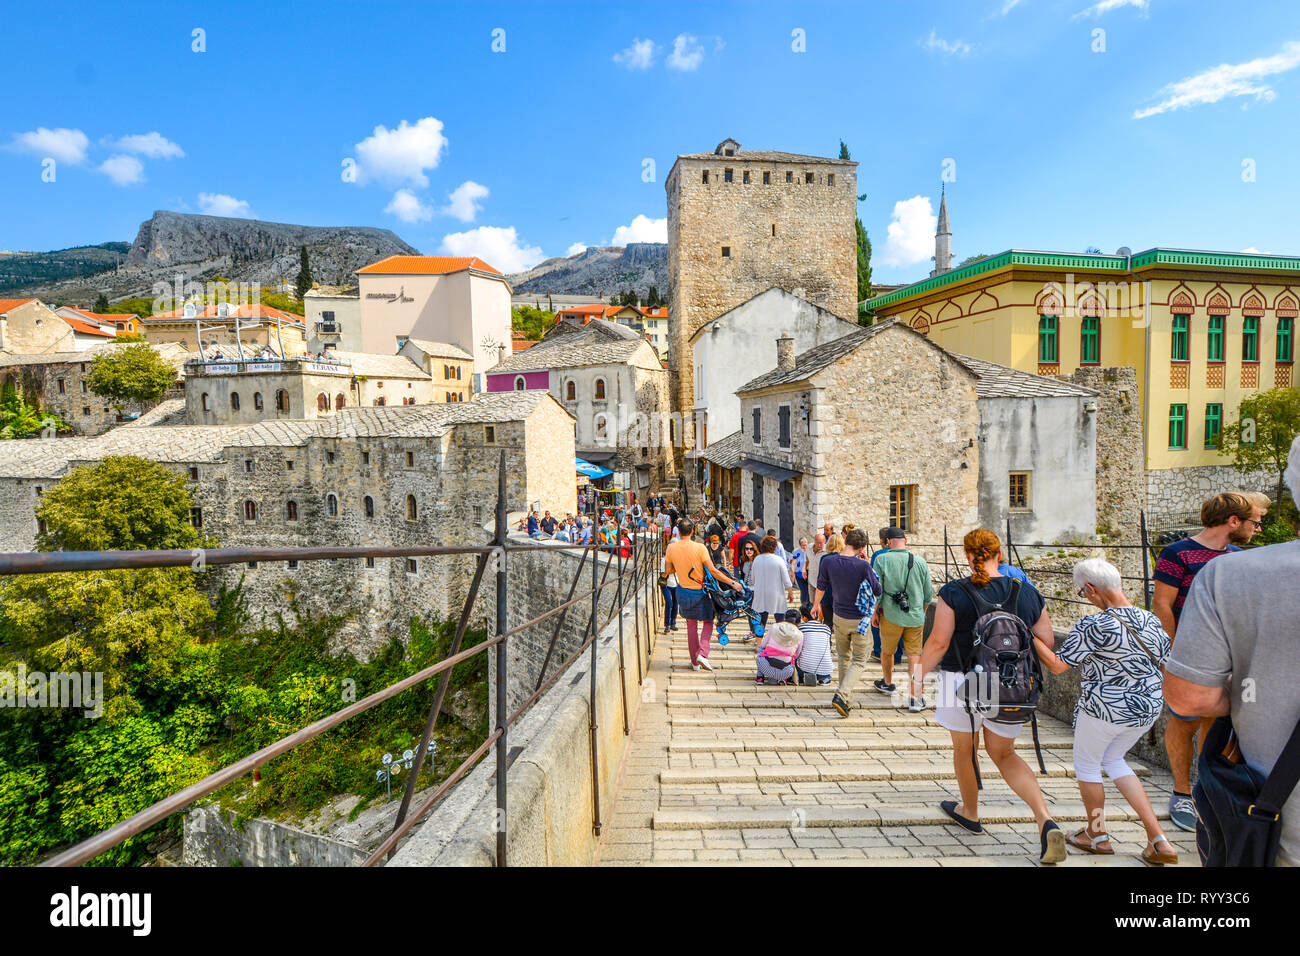 A crowd of tourists cross over the restored Mostar Bridge in the city of Mostar, Bosnia, as they make their way into the old town section. - Stock Image